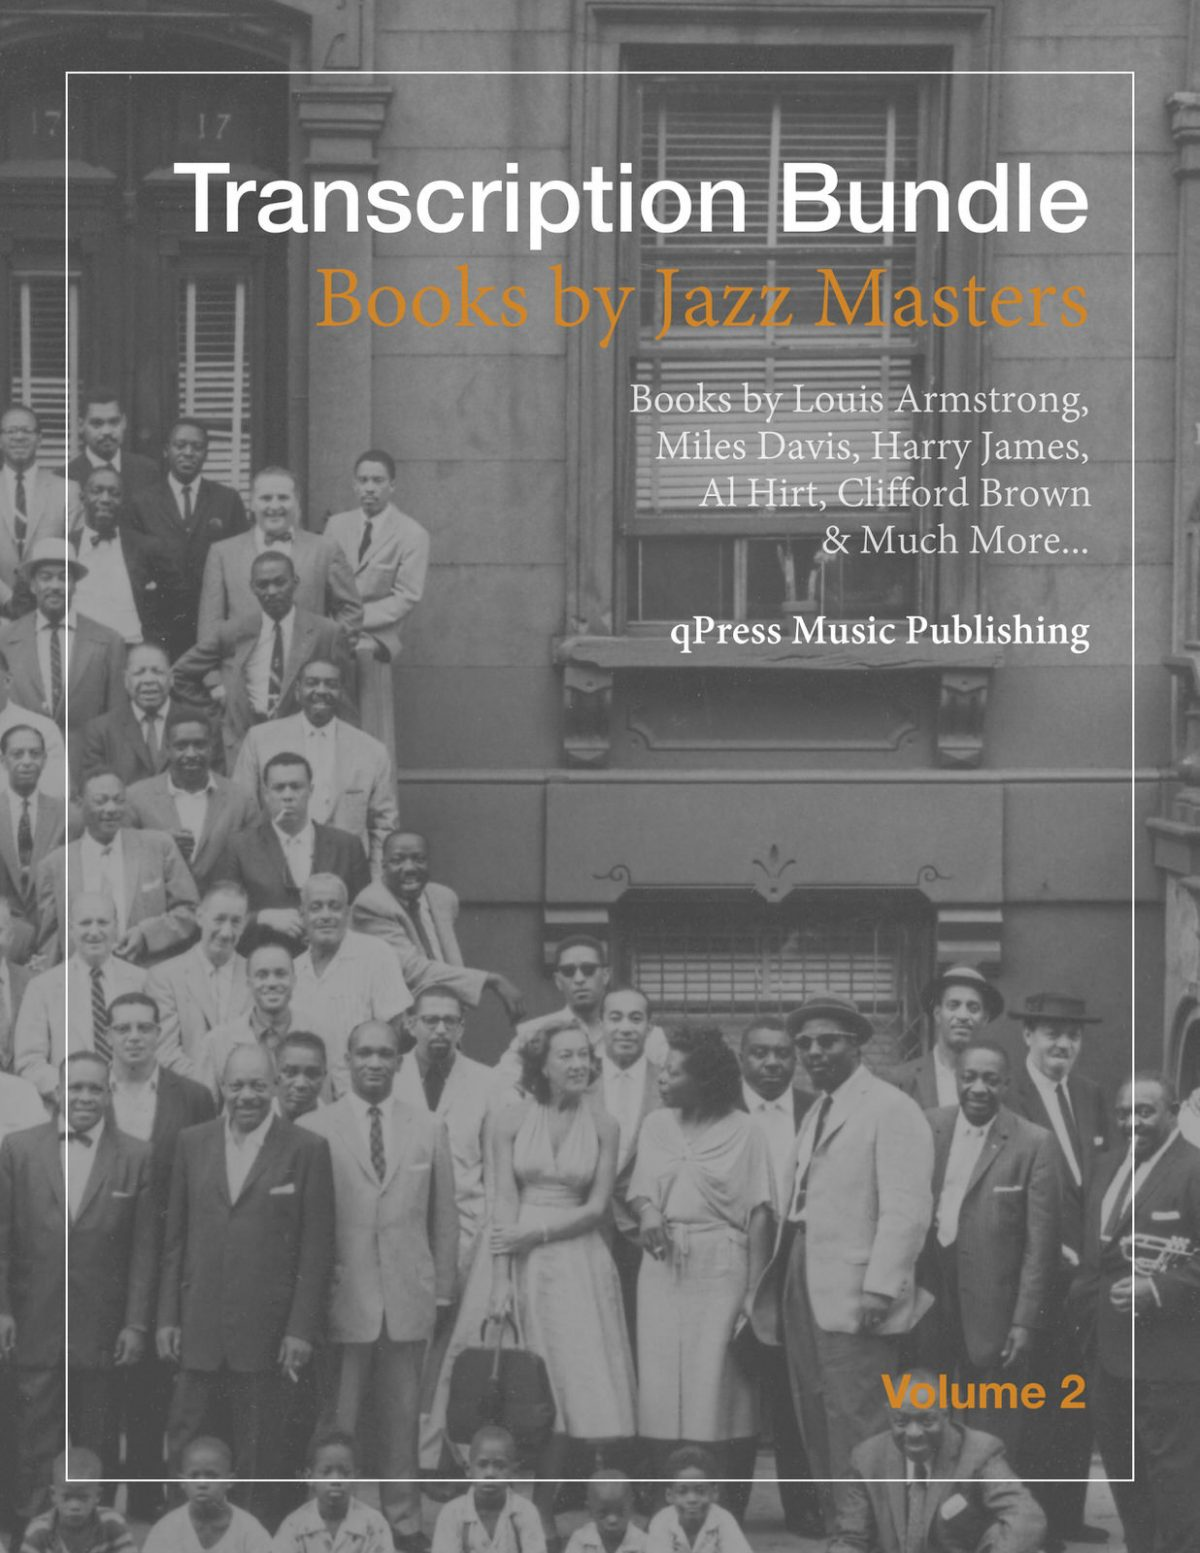 Transcription Bundle Vol 2-1